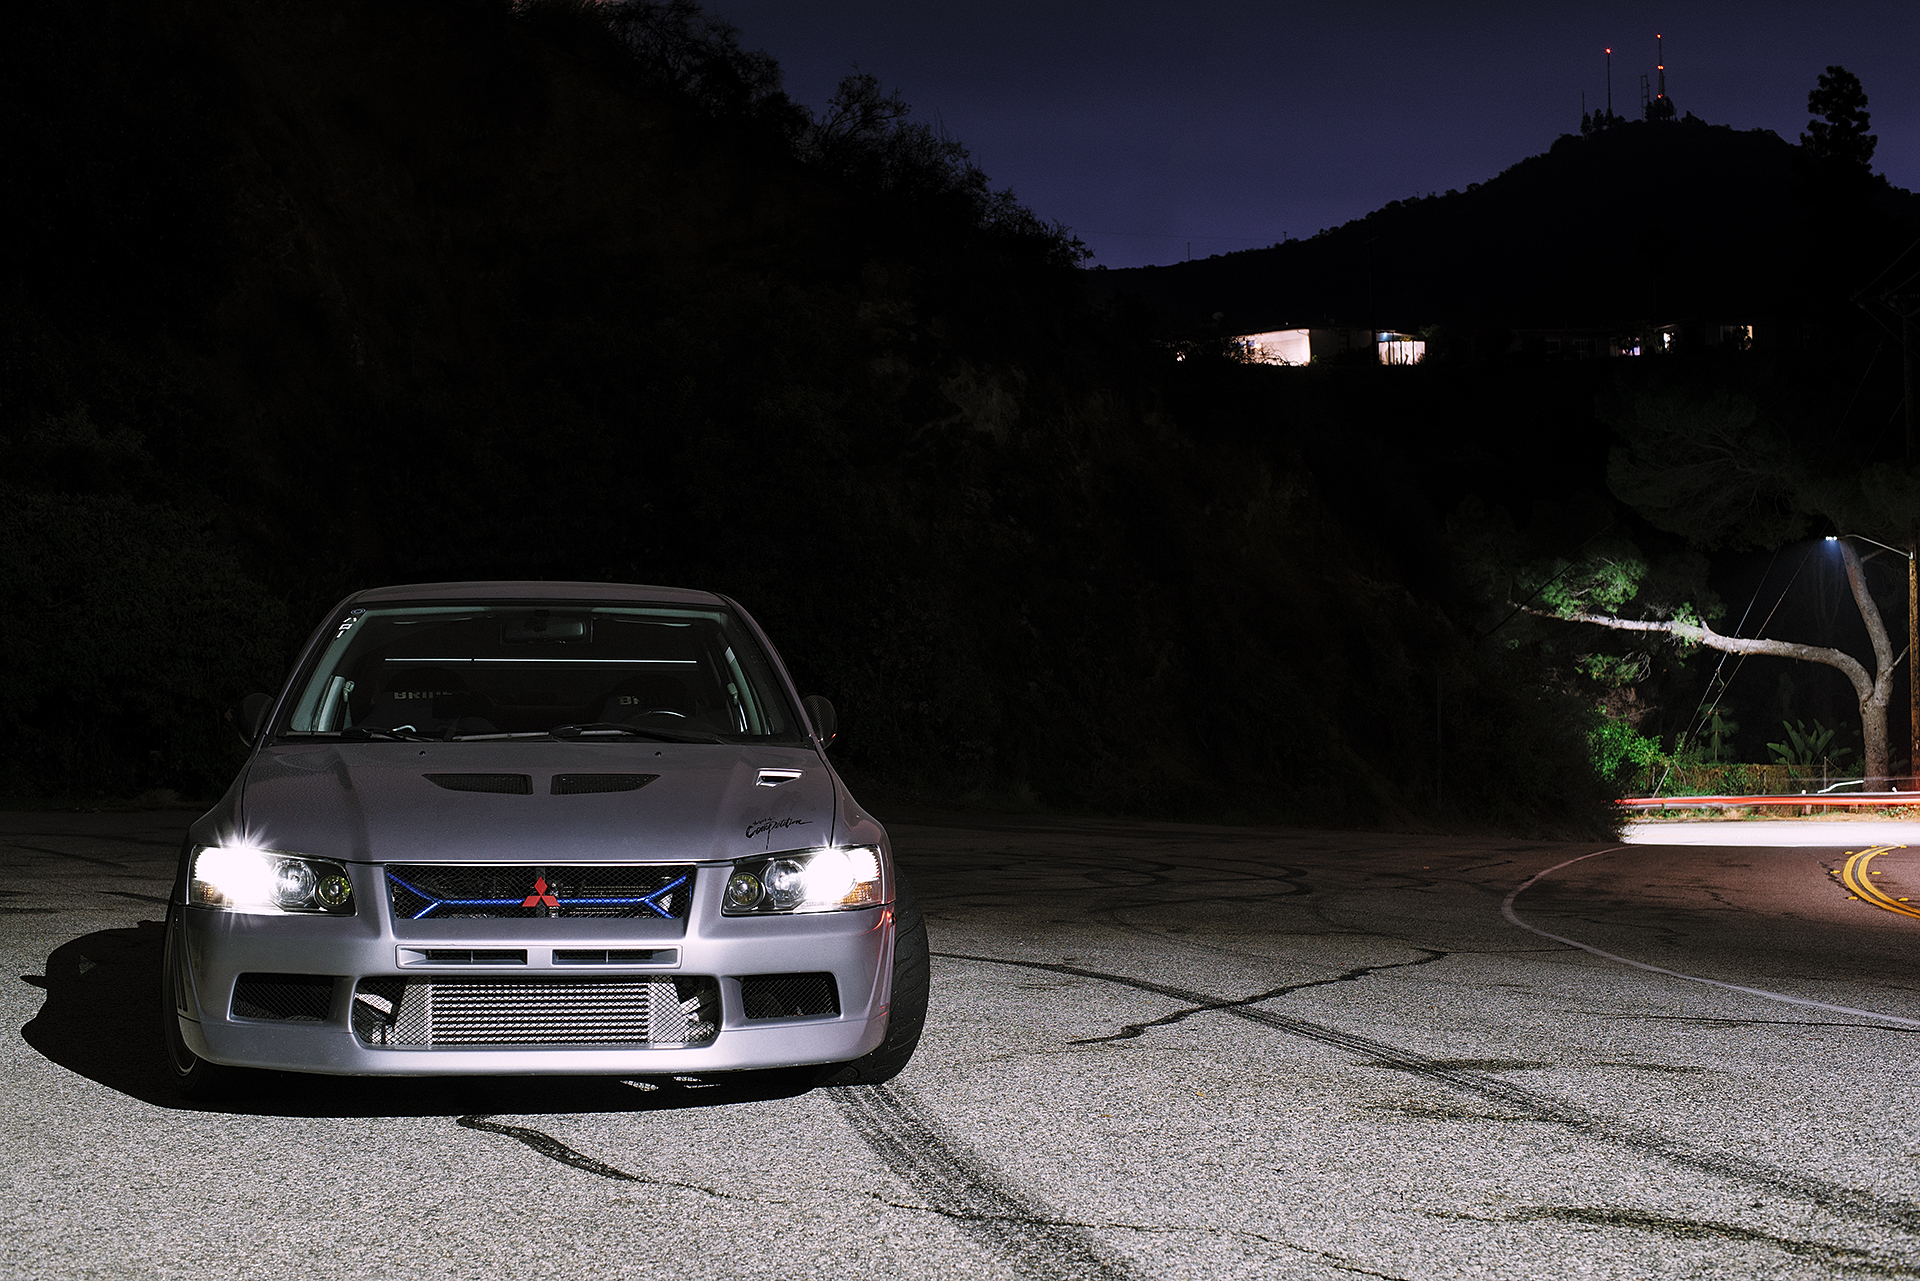 My Evo 7 parked off of Chevy Chase Drive at night